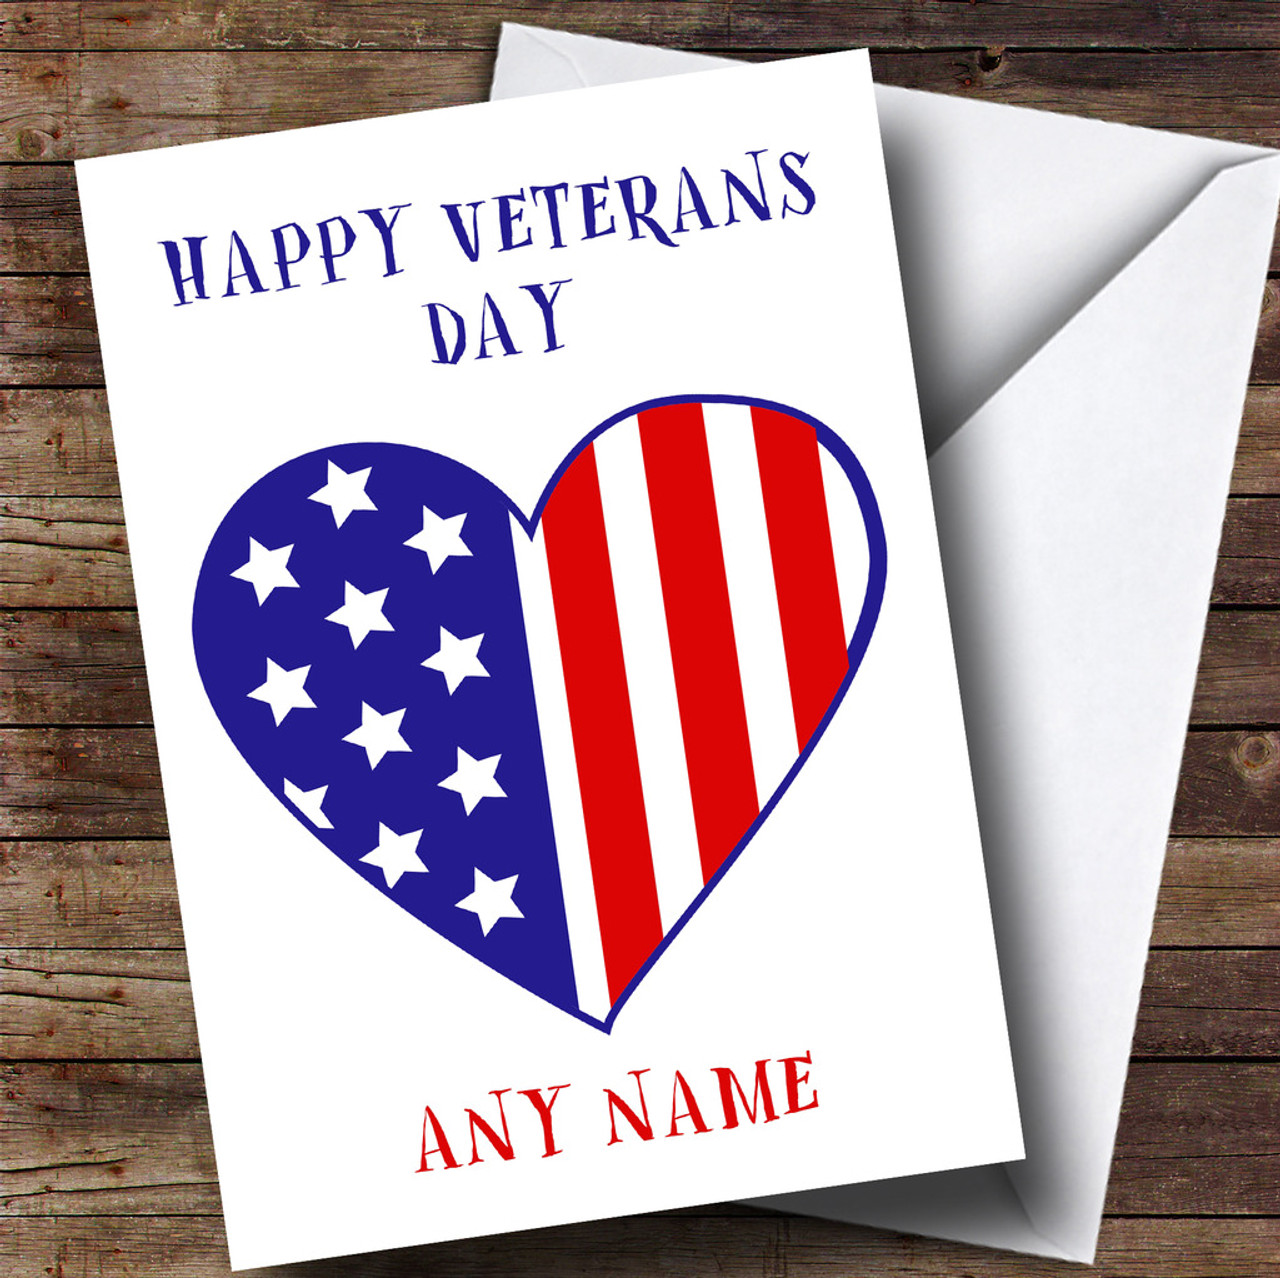 Personalised cards veterans day cards the card zoo usa flag heart personalised veterans day card m4hsunfo